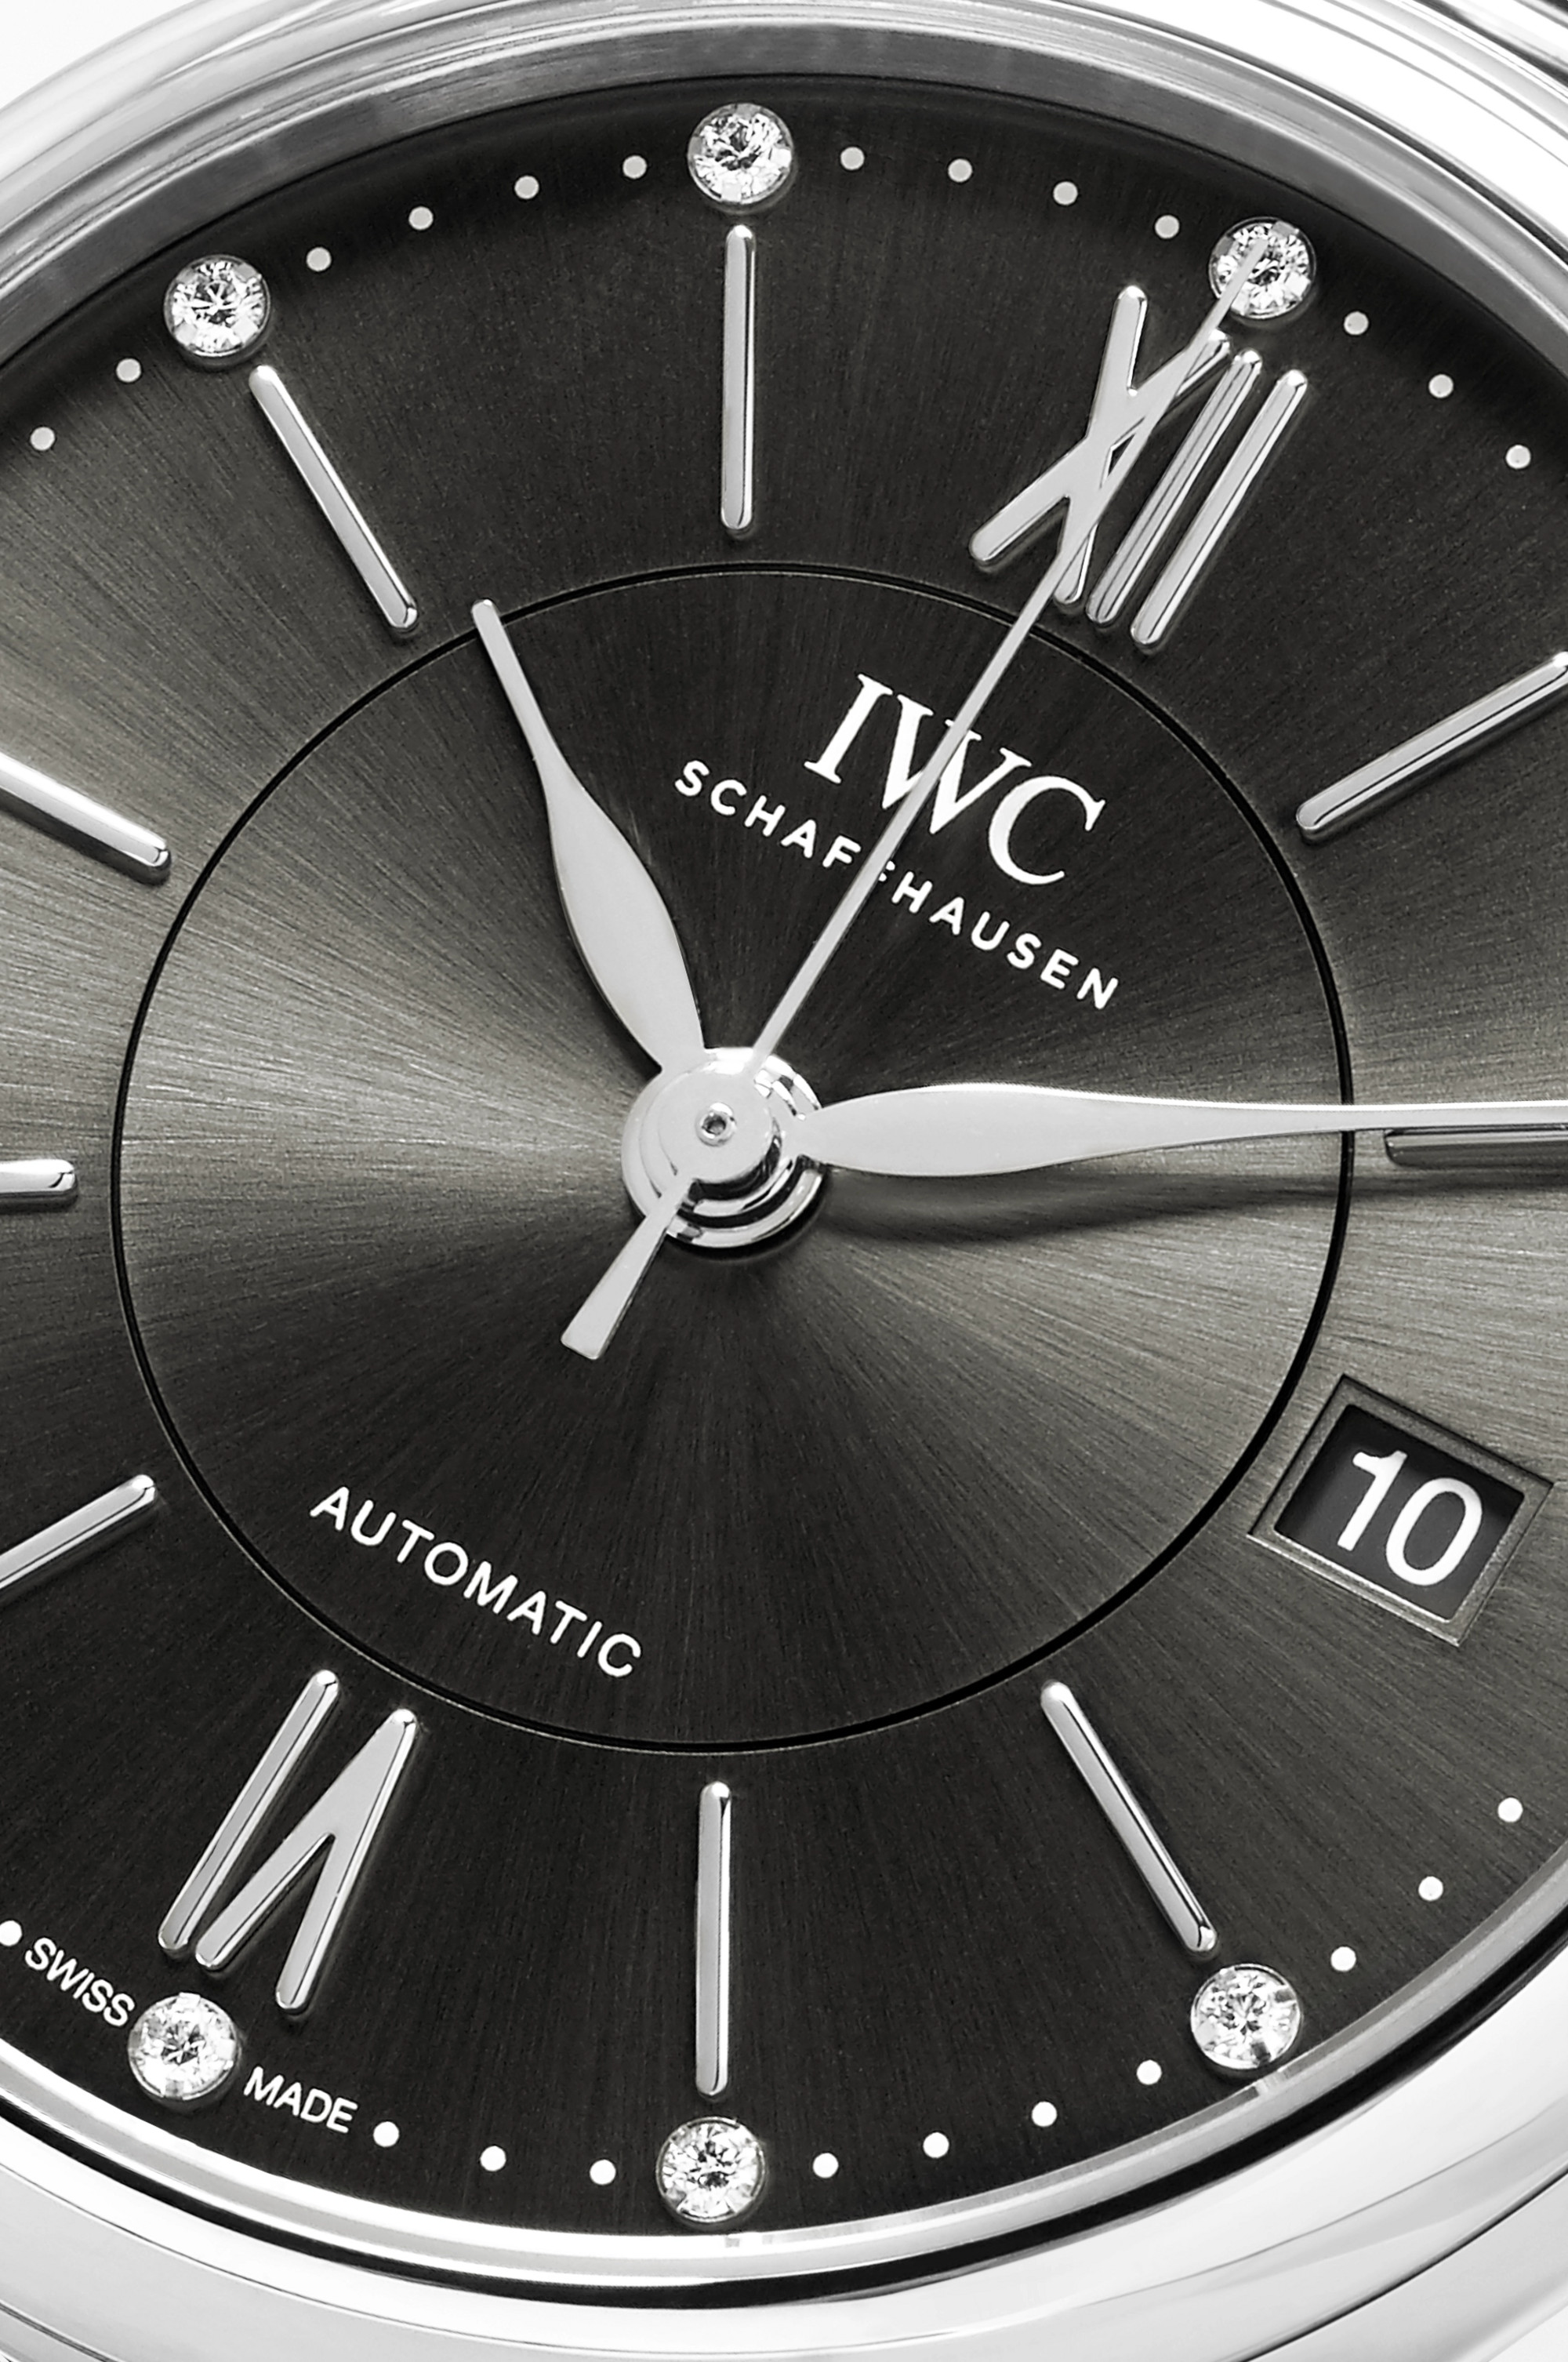 IWC SCHAFFHAUSEN Portofino Automatic 37mm stainless steel and diamond watch